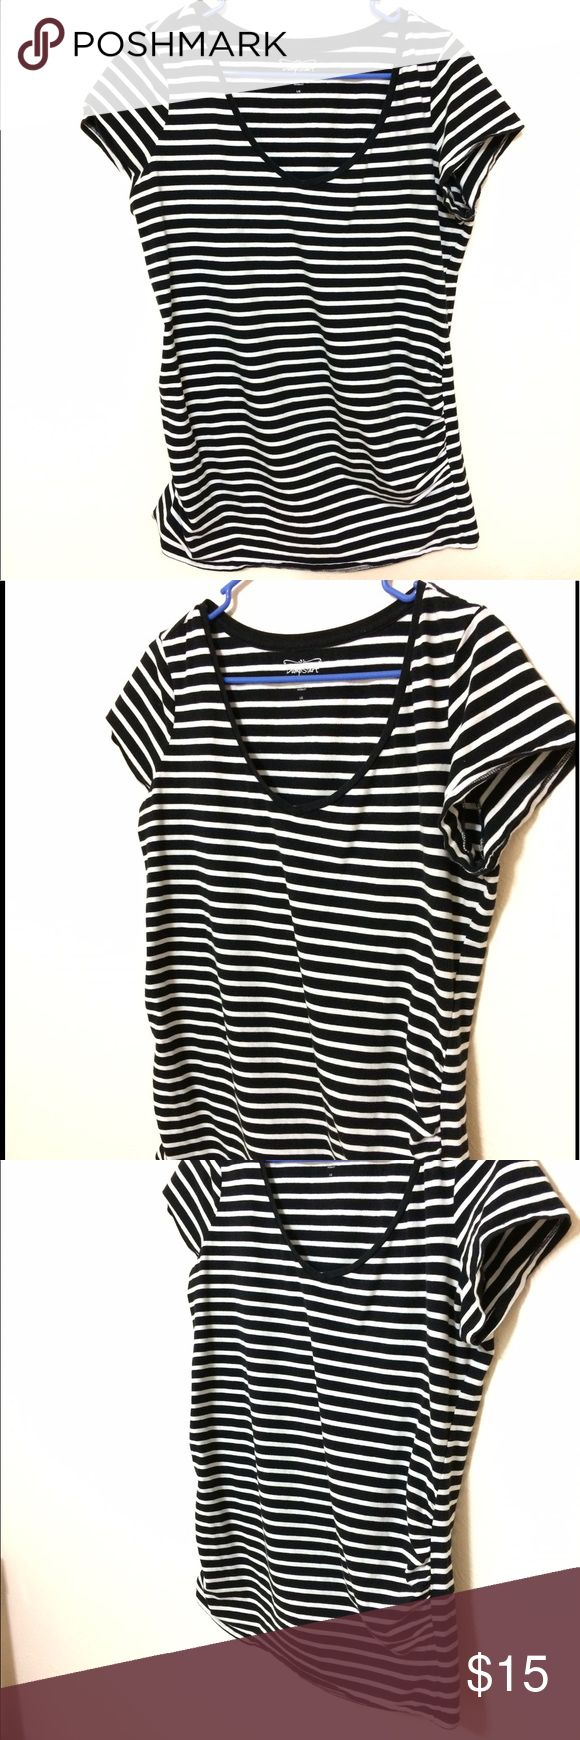 Motherhood Maternity black & white striped T-shirt BumpStart by Motherhood maternity black and white striped t-shirt. Scoop neck style. Side ruffling so this shirt can grow with your belly! Very loose and comfy fit. I can't tell you enough how comfy this shirt is! Great quality. Enough fabric and stretch to use while breastfeeding as well. Pet free and smoke free home. Motherhood Maternity Tops Tees - Short Sleeve